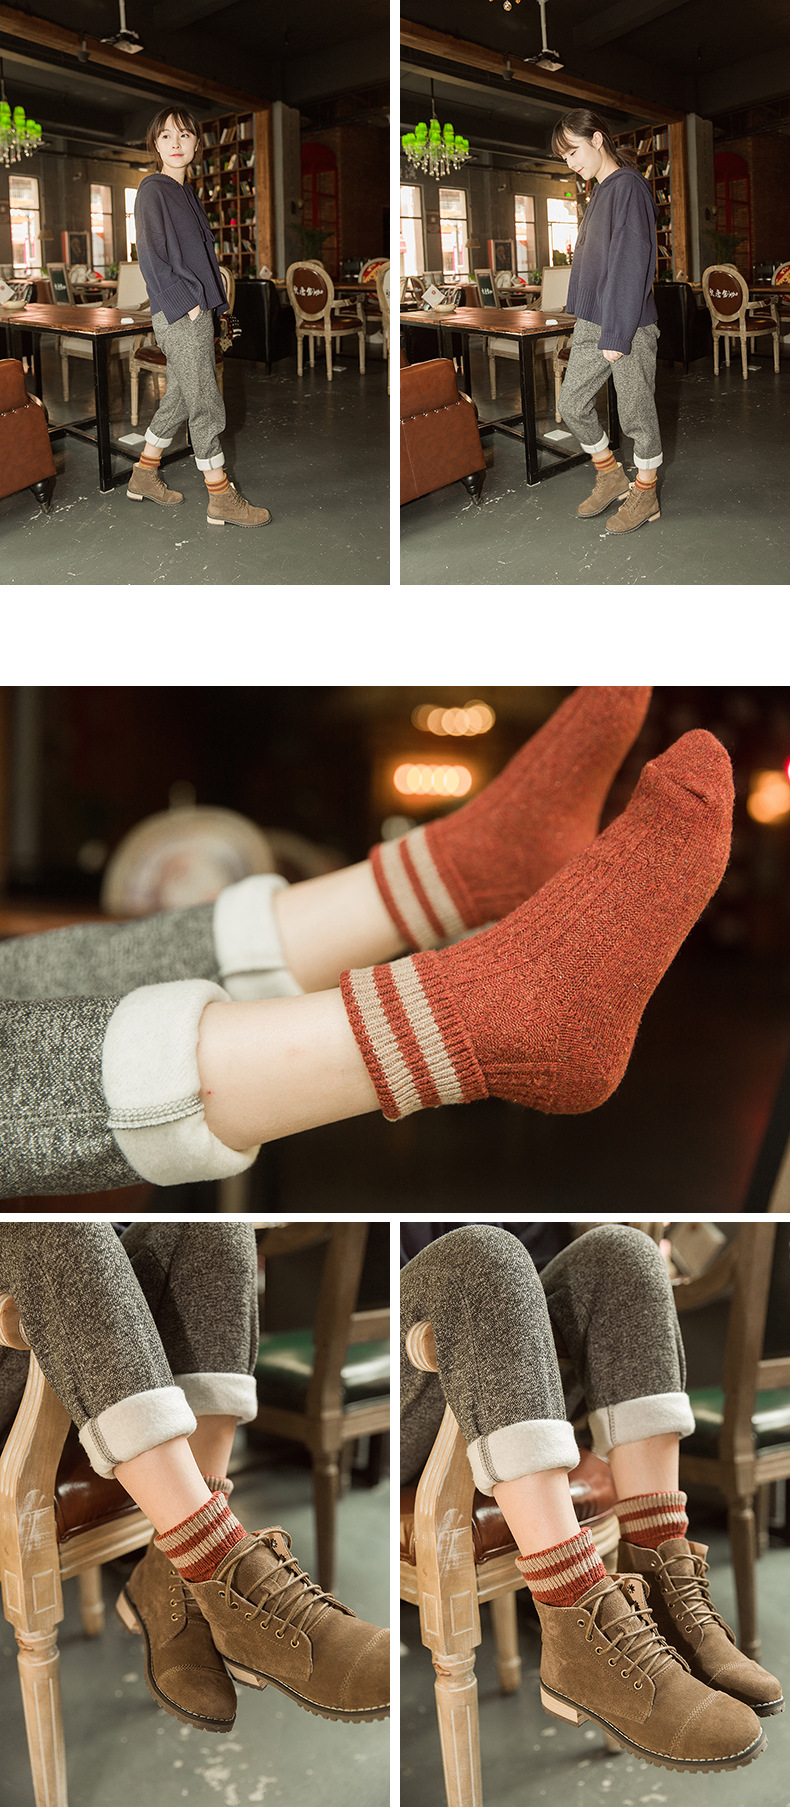 HTB1y6PNacfrK1Rjy1Xdq6yemFXai - 5 Colors New Fashion Retro Wool Women Socks Autumn Winter Wamer Cotton Girl Socks Female Japanese Tube Sock Students Hosiery